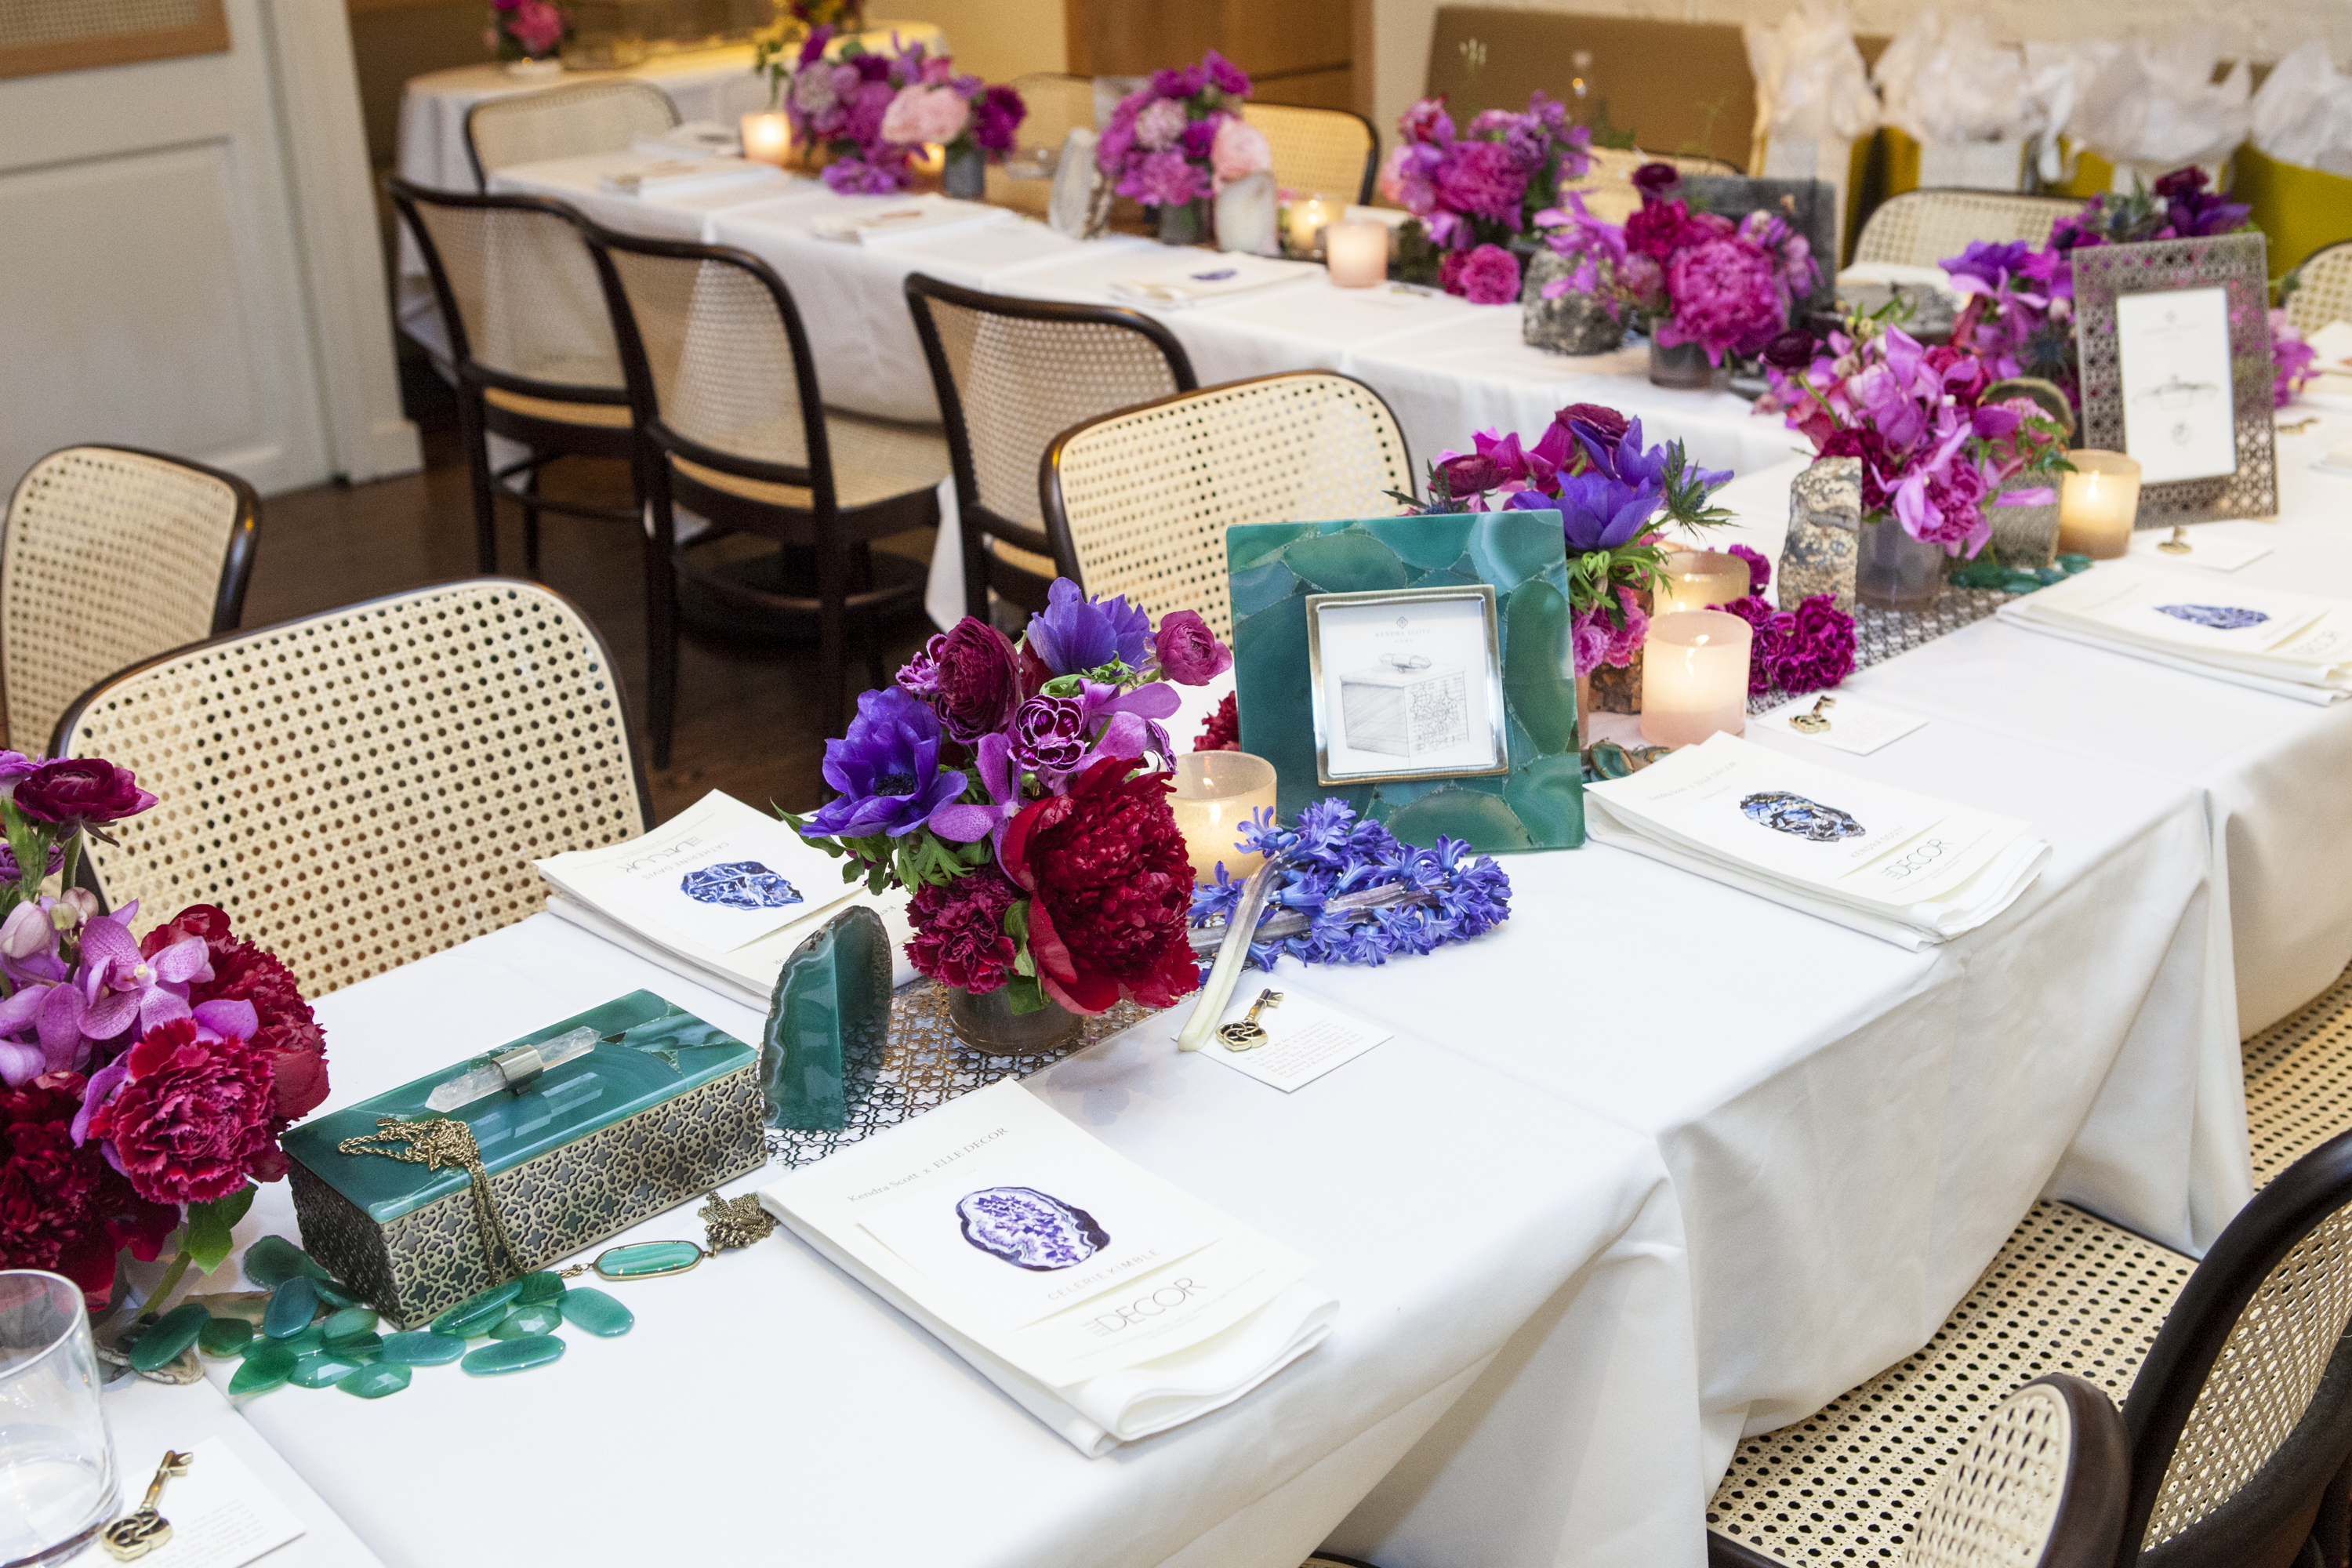 The new collection showcased on the table setting